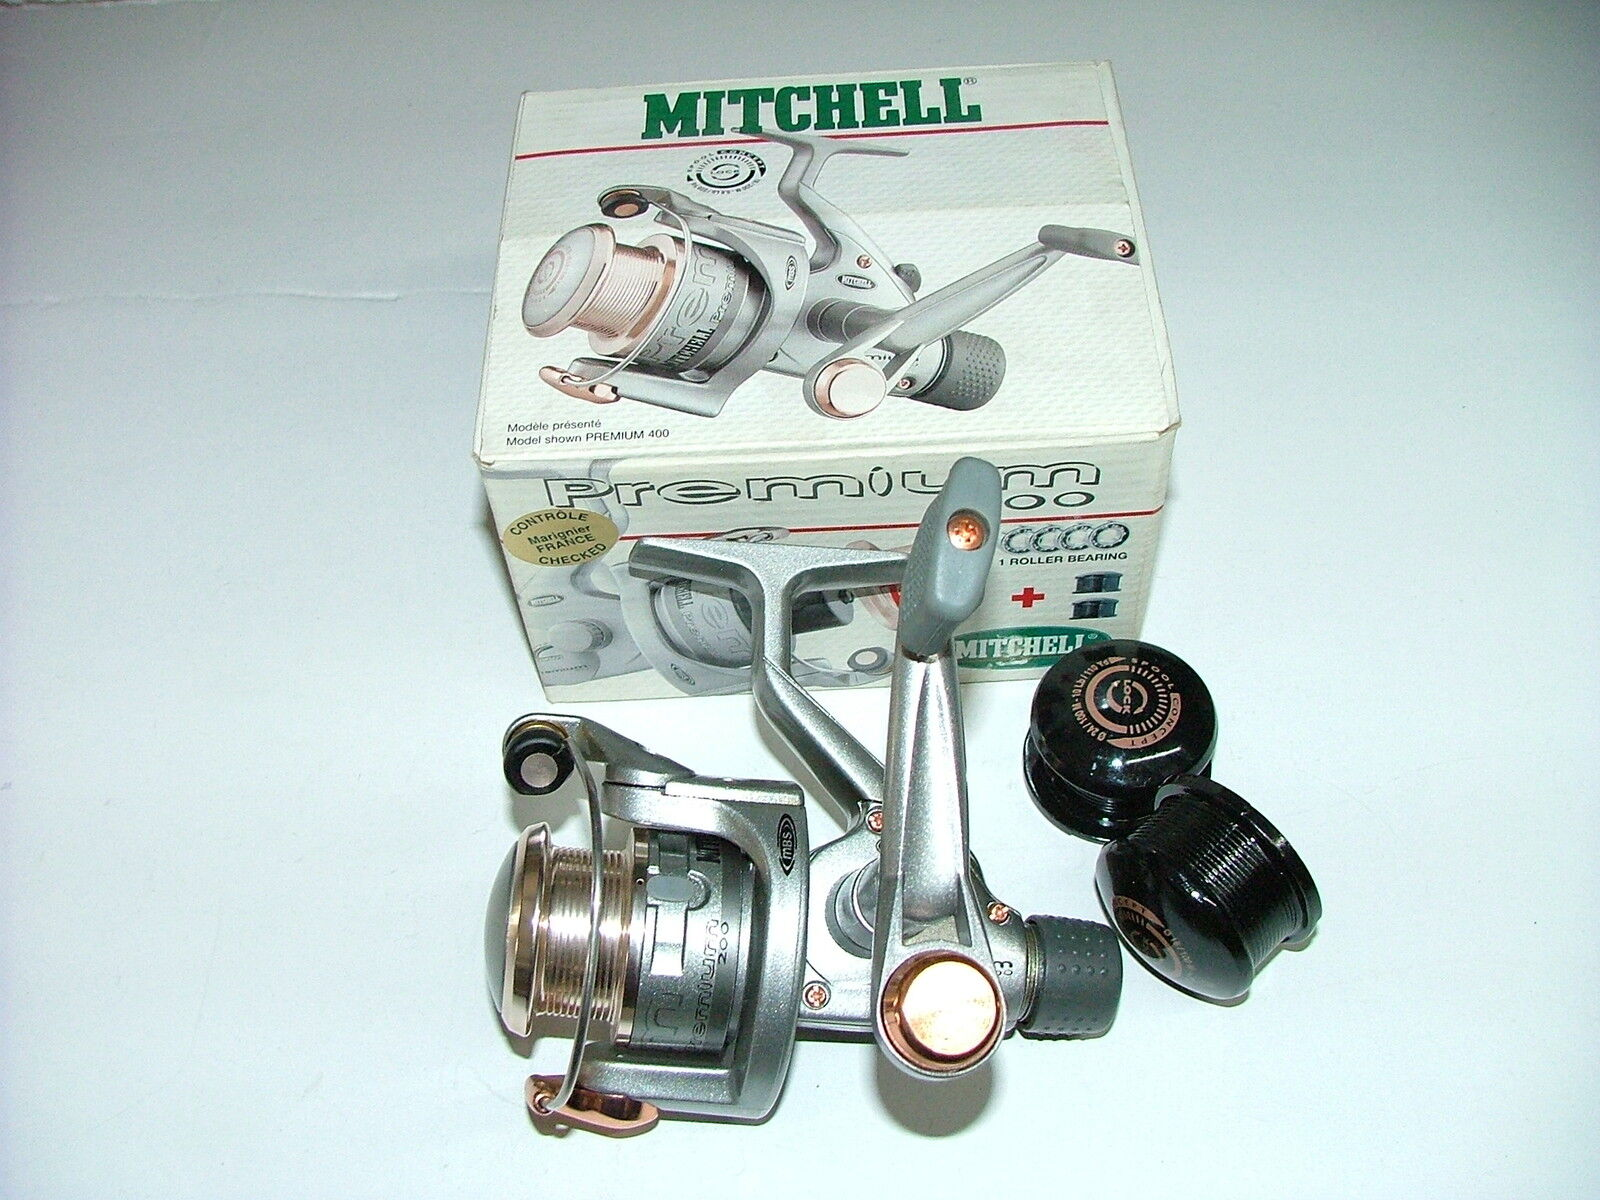 MITCHELL PREMIUM 200 mulinello 5 cuscinetti pesca bolognese inglese spinning